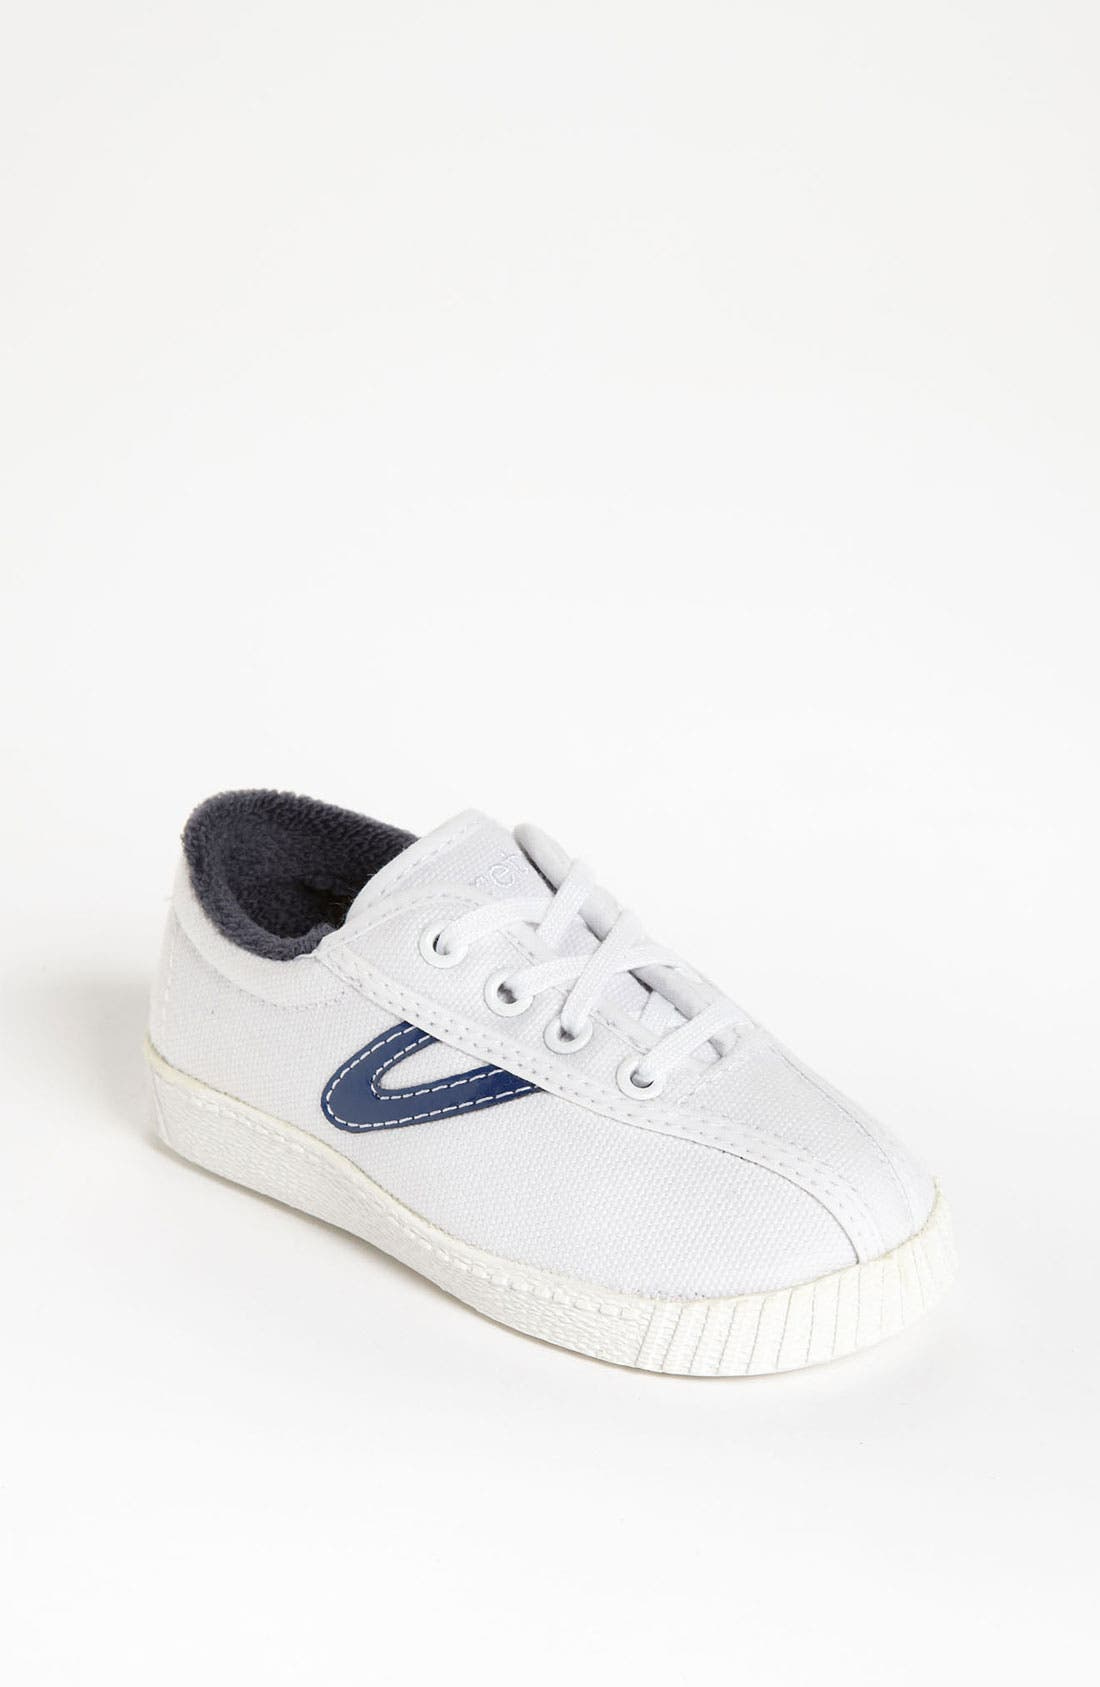 Alternate Image 1 Selected - Tretorn 'Nylite' Tennis Shoe (Baby, Walker & Toddler)